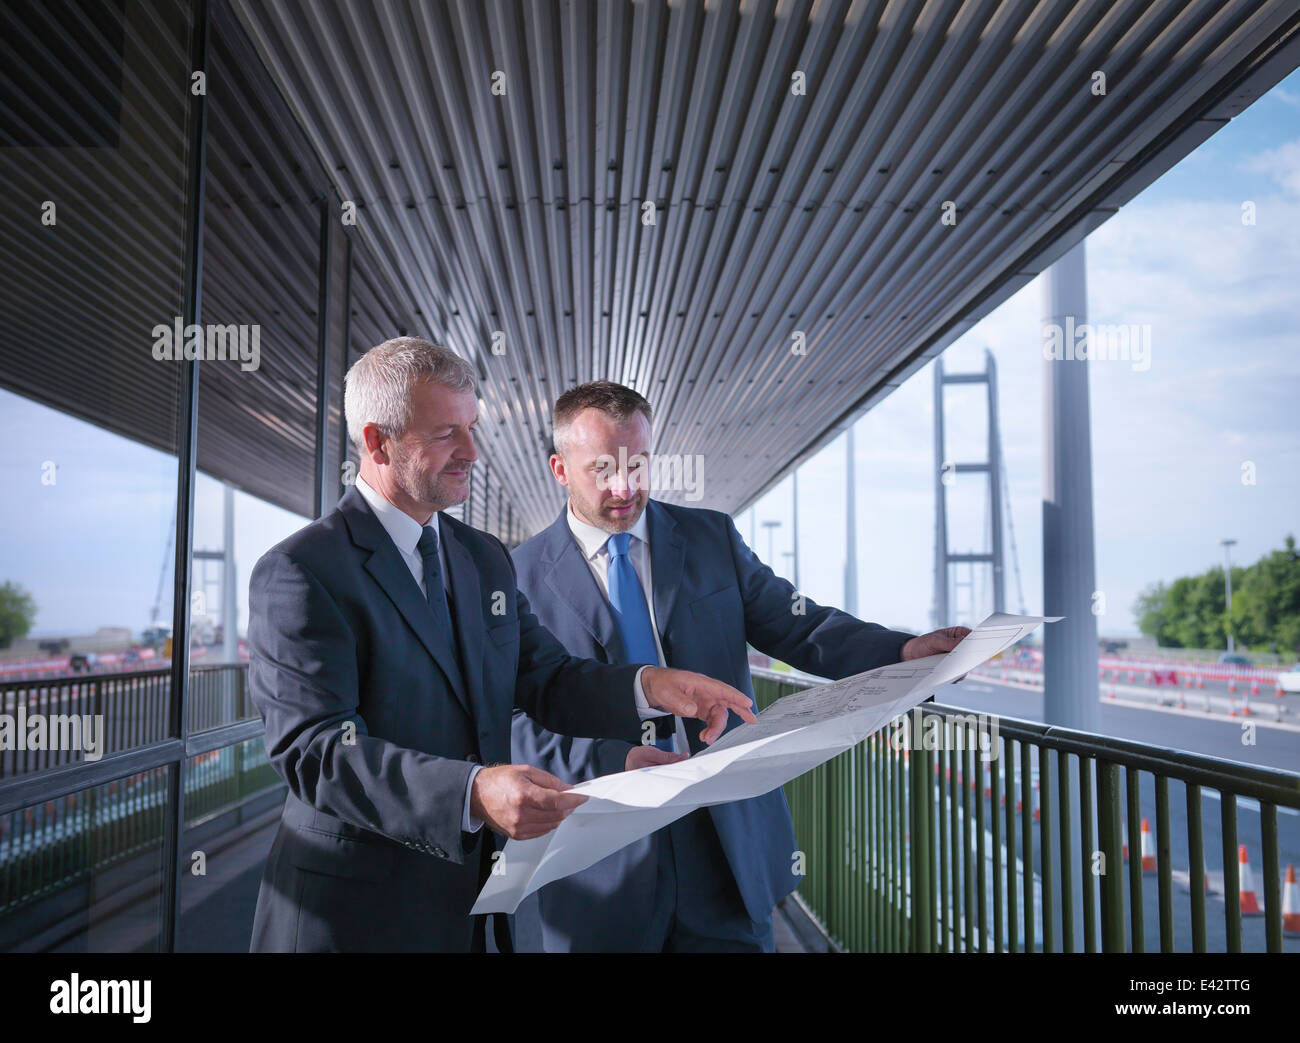 Civil engineering architects inspecting plans of suspension bridge. The Humber Bridge, UK, built in 1981 - Stock Image